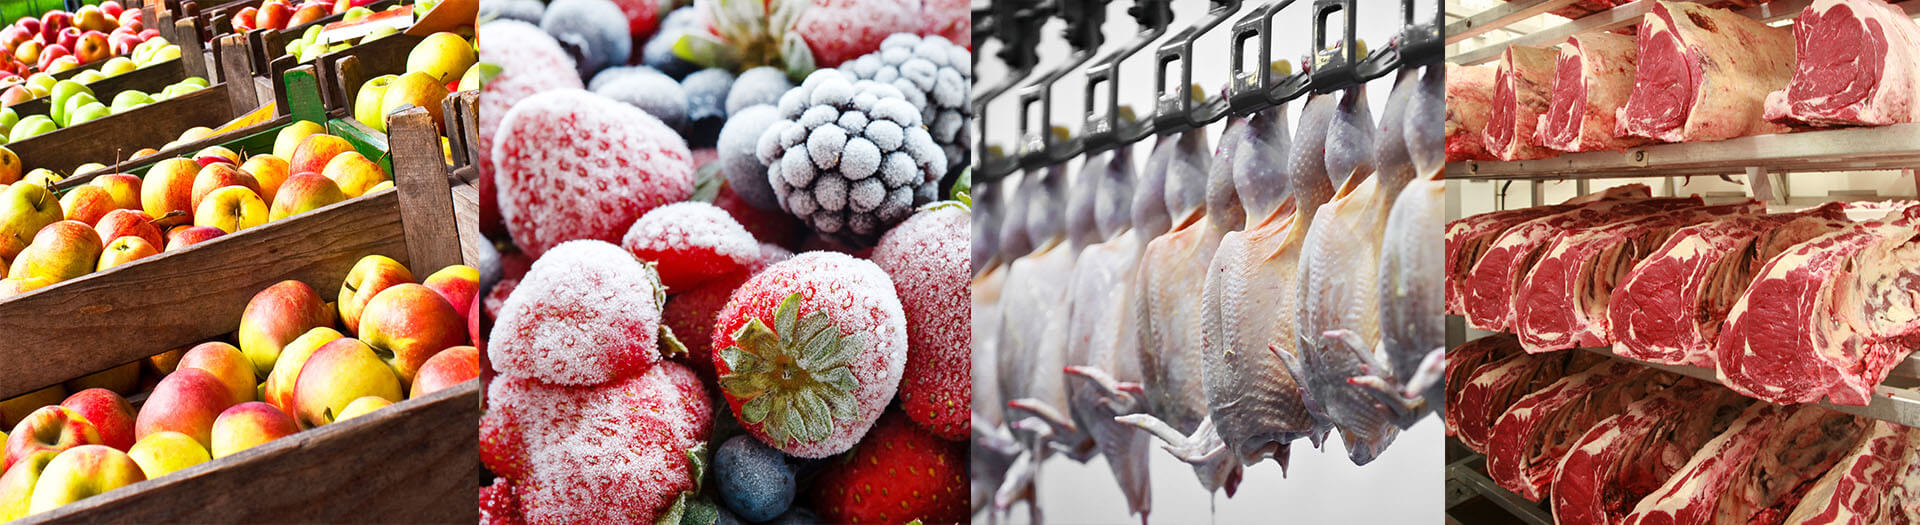 Fresh frozen fruit meat East Europe Serbia